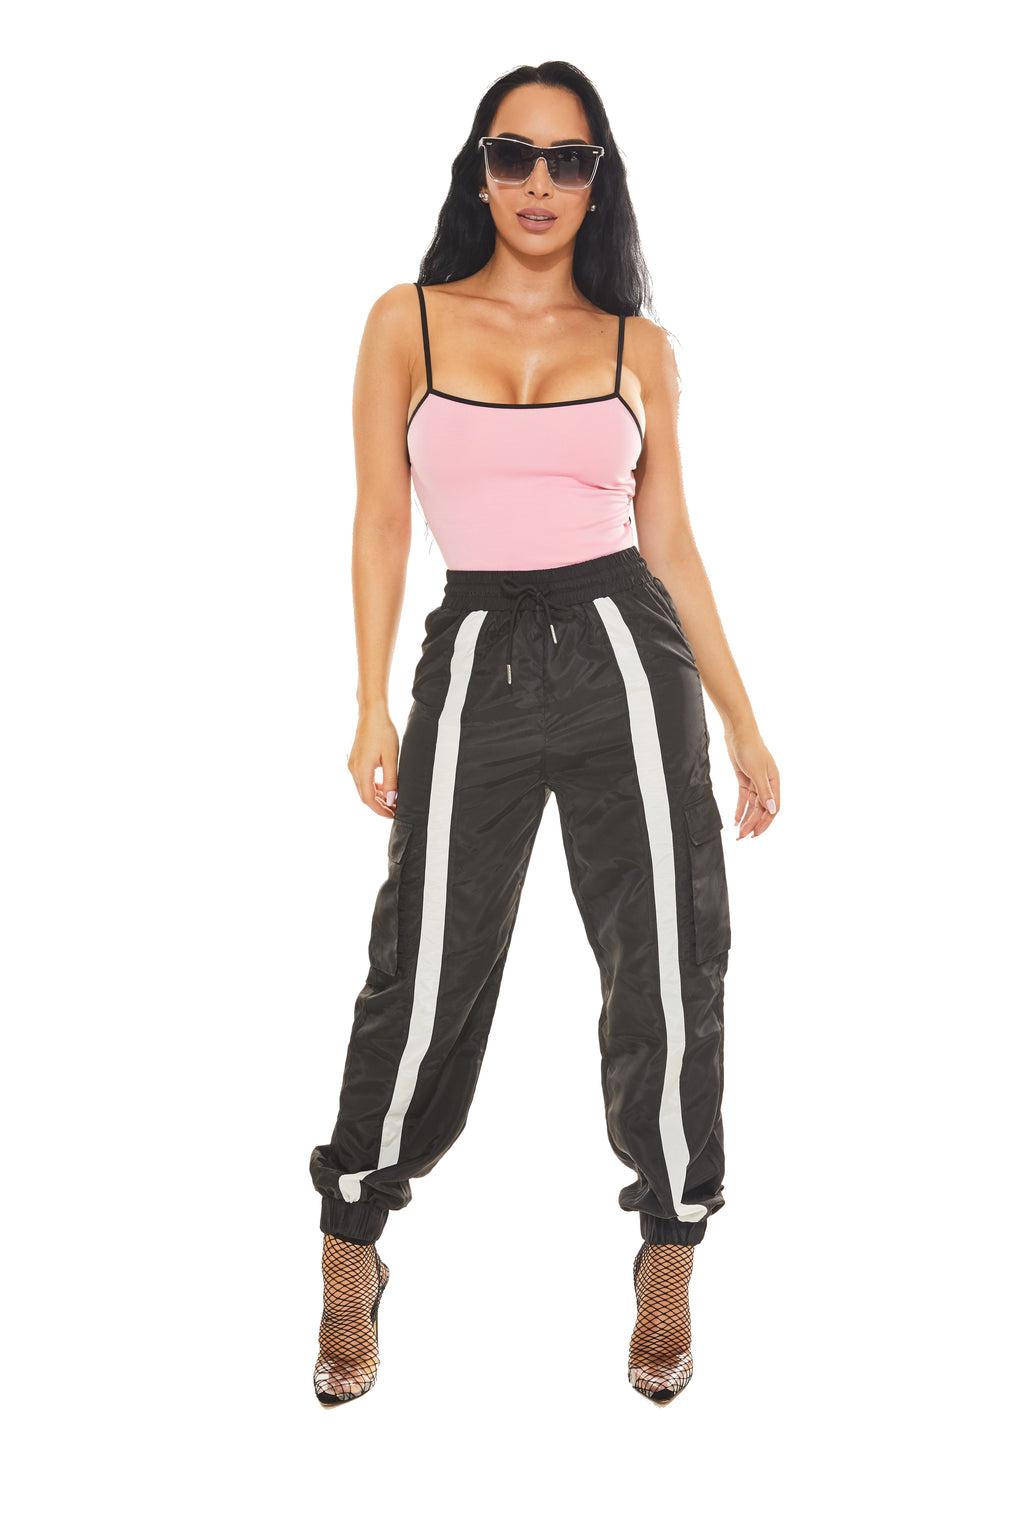 JAIL HOUSE SWAG - Black Stripe Track Pant - www.prettyboutique.com